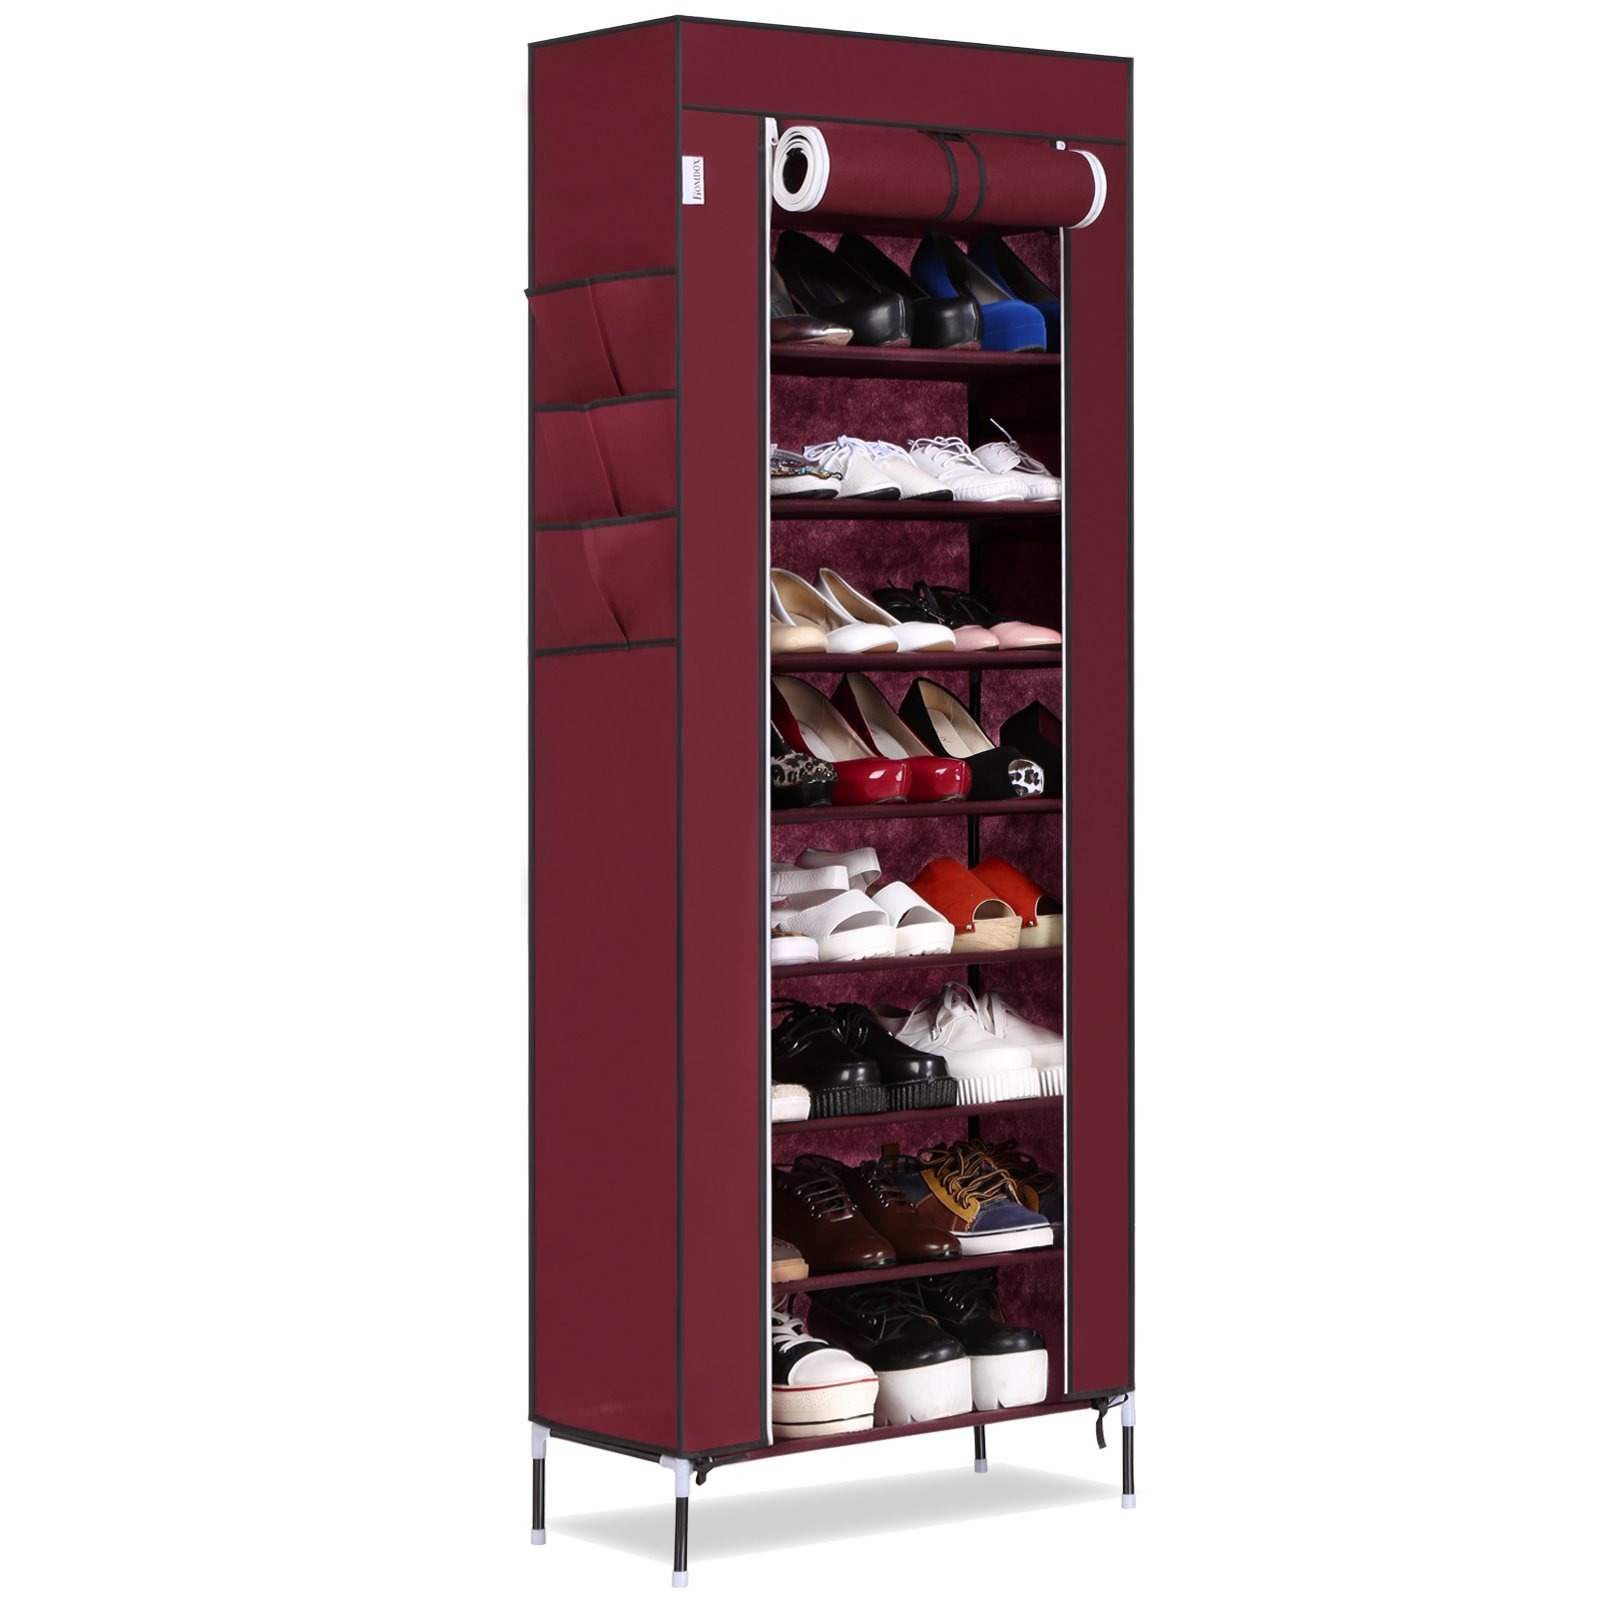 Keland 10-Tier Standing Tall Large Capacity Shoes Storage Organizer,Portable Shoe Rack with Dustproof Fabric Cover(US Stock) (Wine Red)